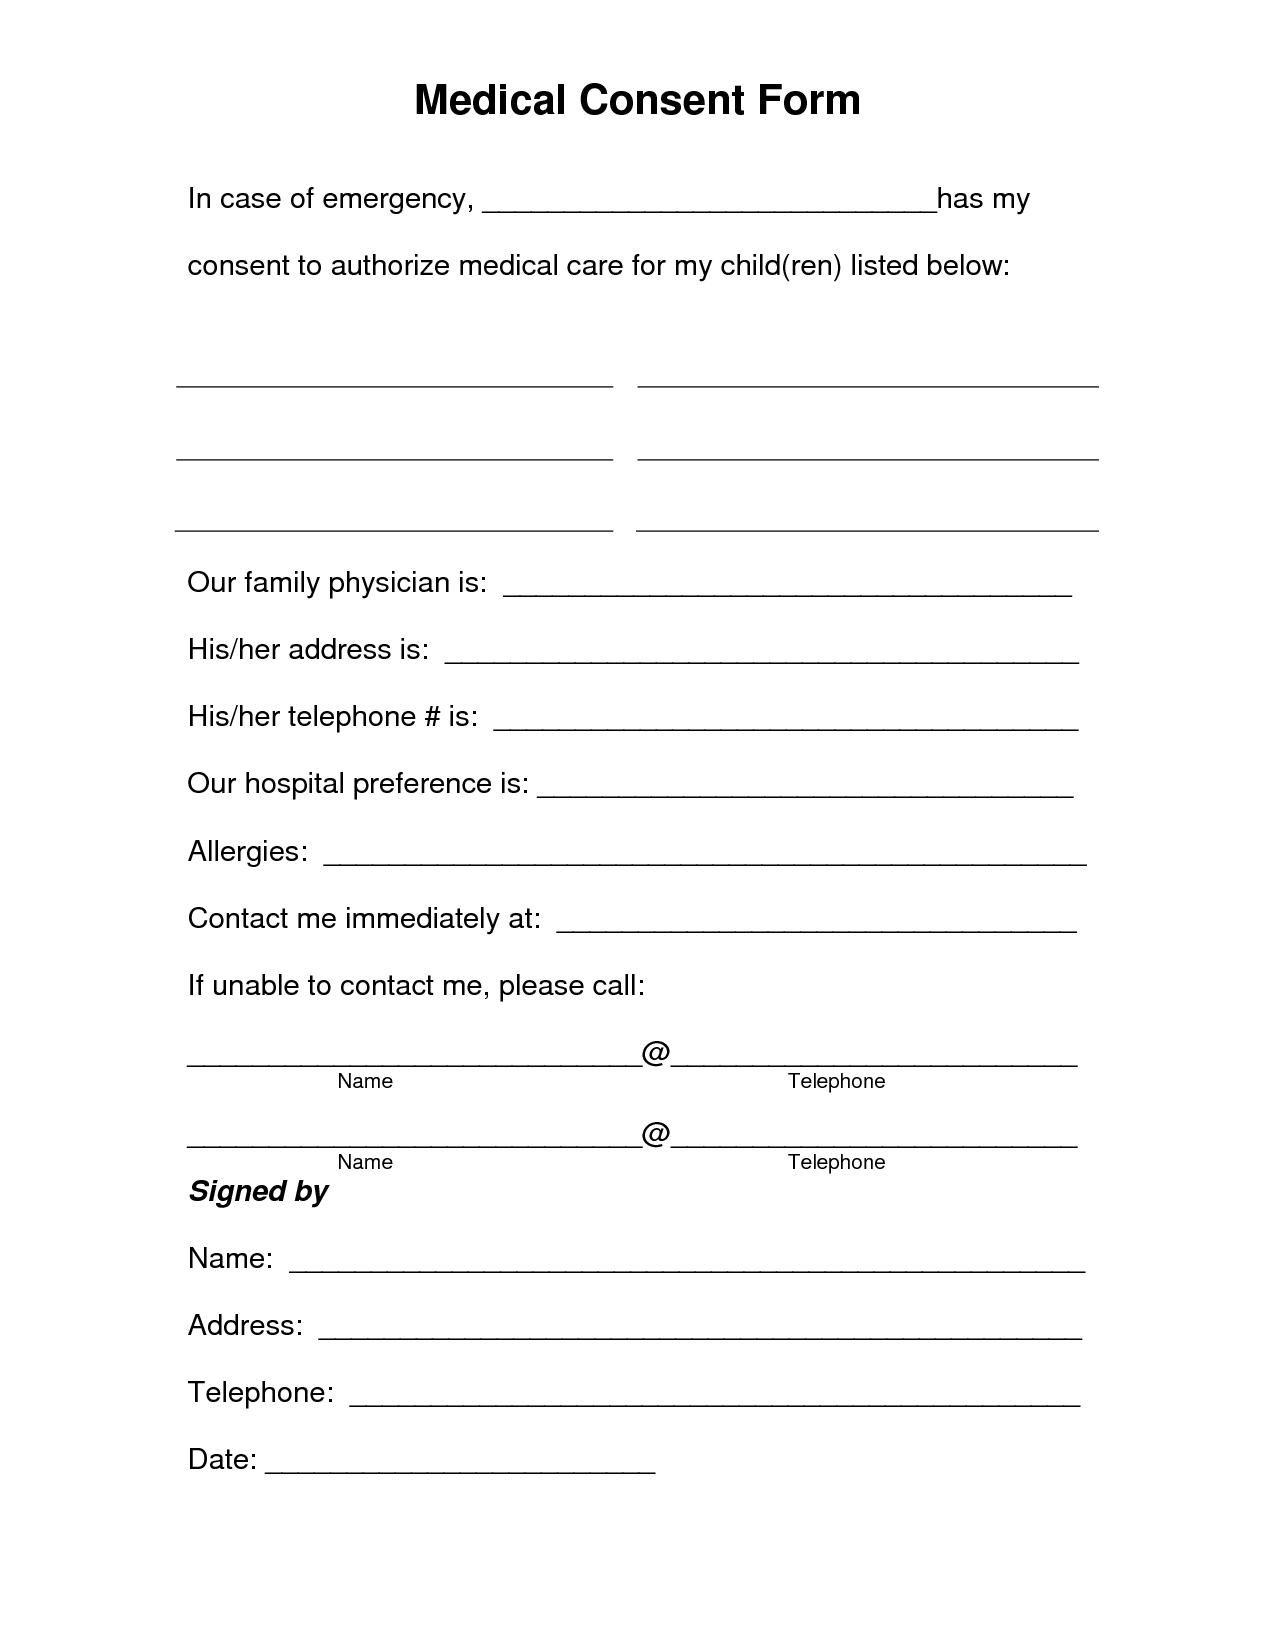 Free Printable Medical Consent Form | Free Medical Consent Form - Free Printable Daycare Forms For Parents